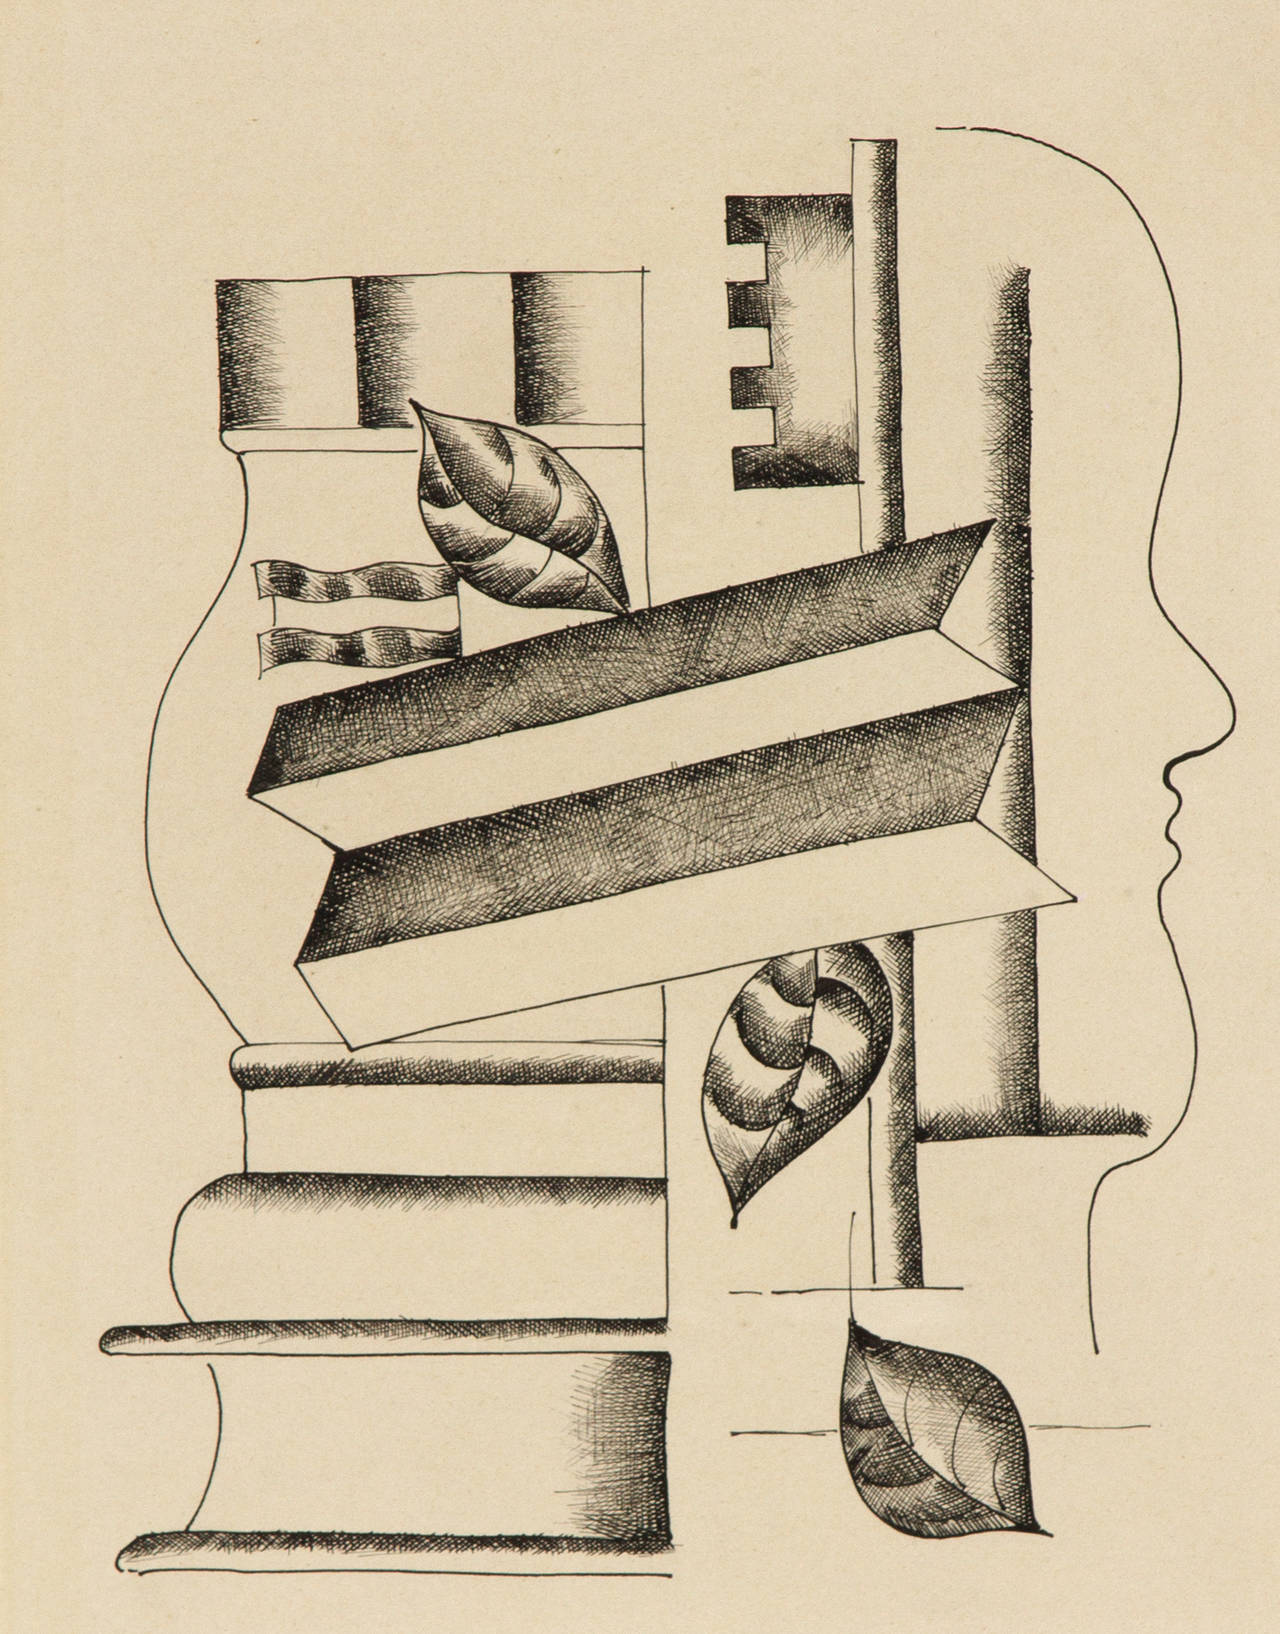 Fernand Léger Abstract Drawing - Profil, Vase et Clef